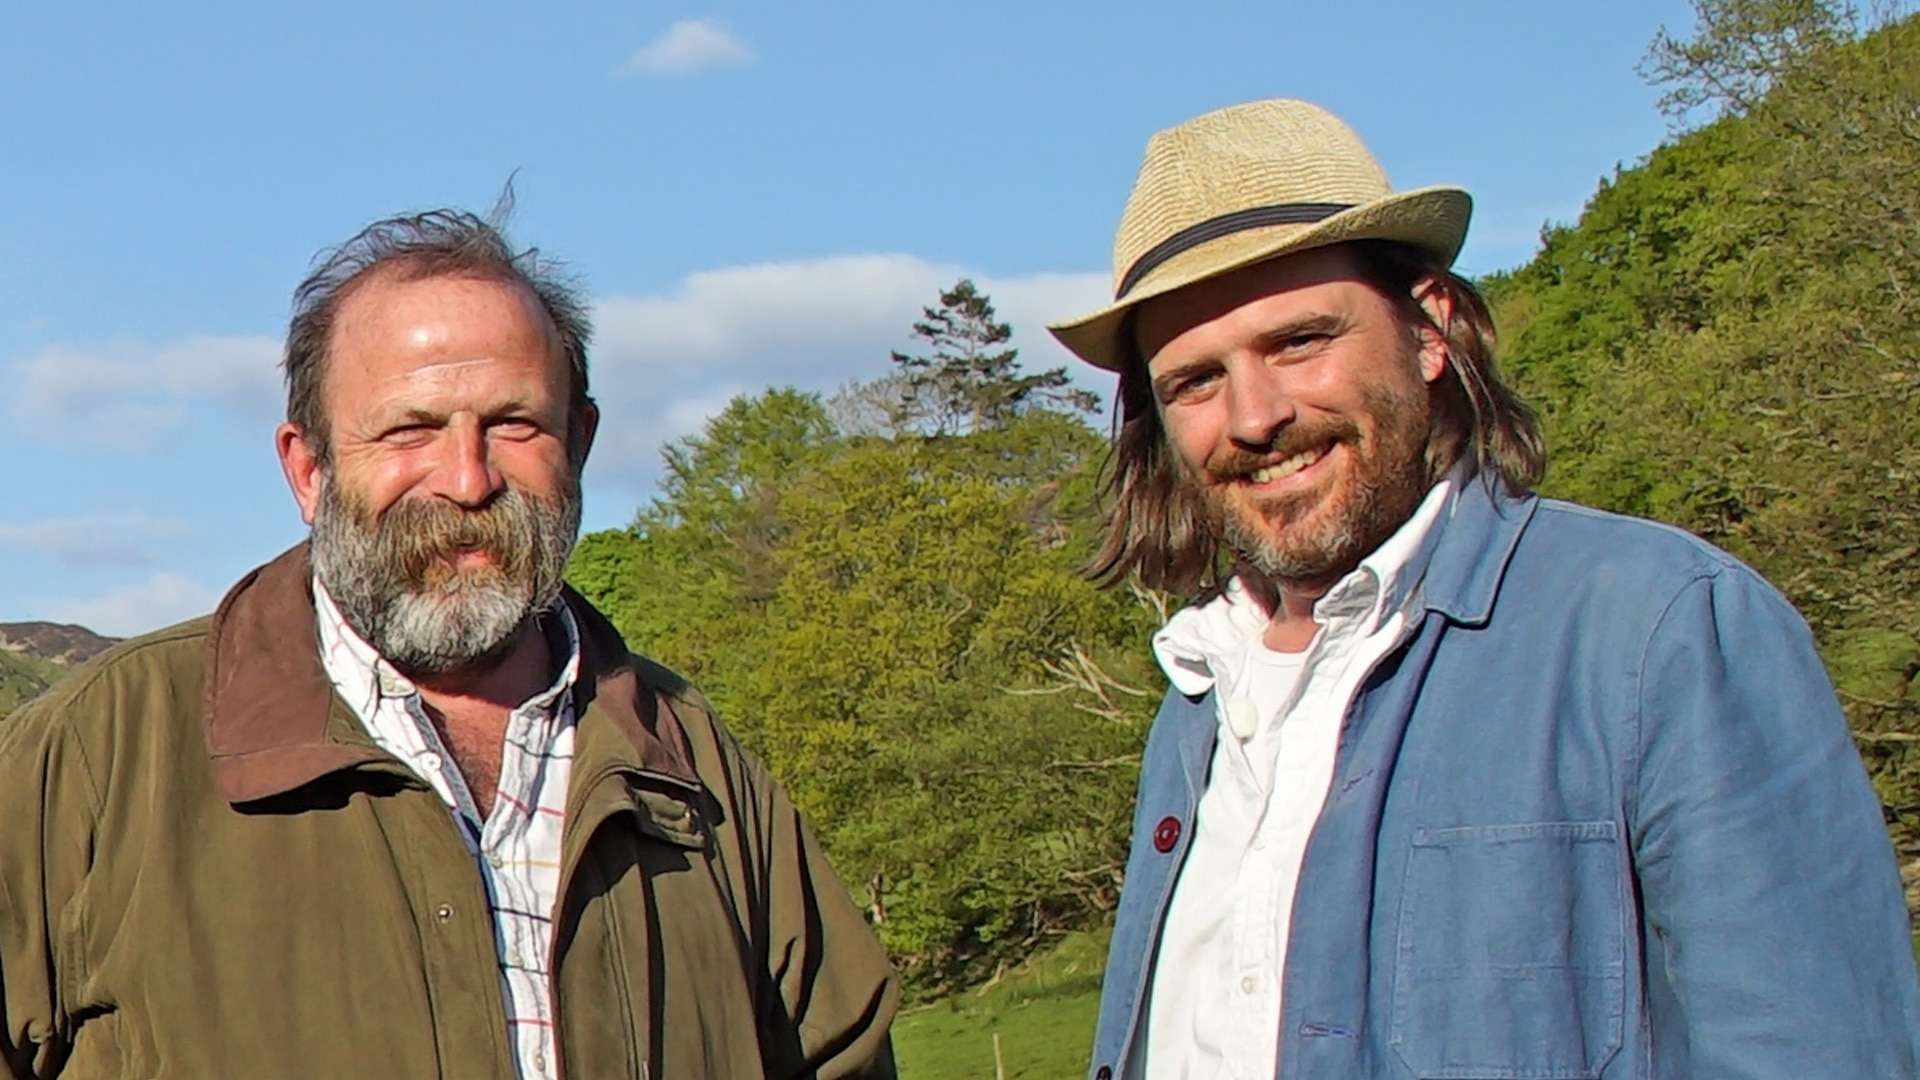 Cabins in the Wild with Dick Strawbridge - All 4